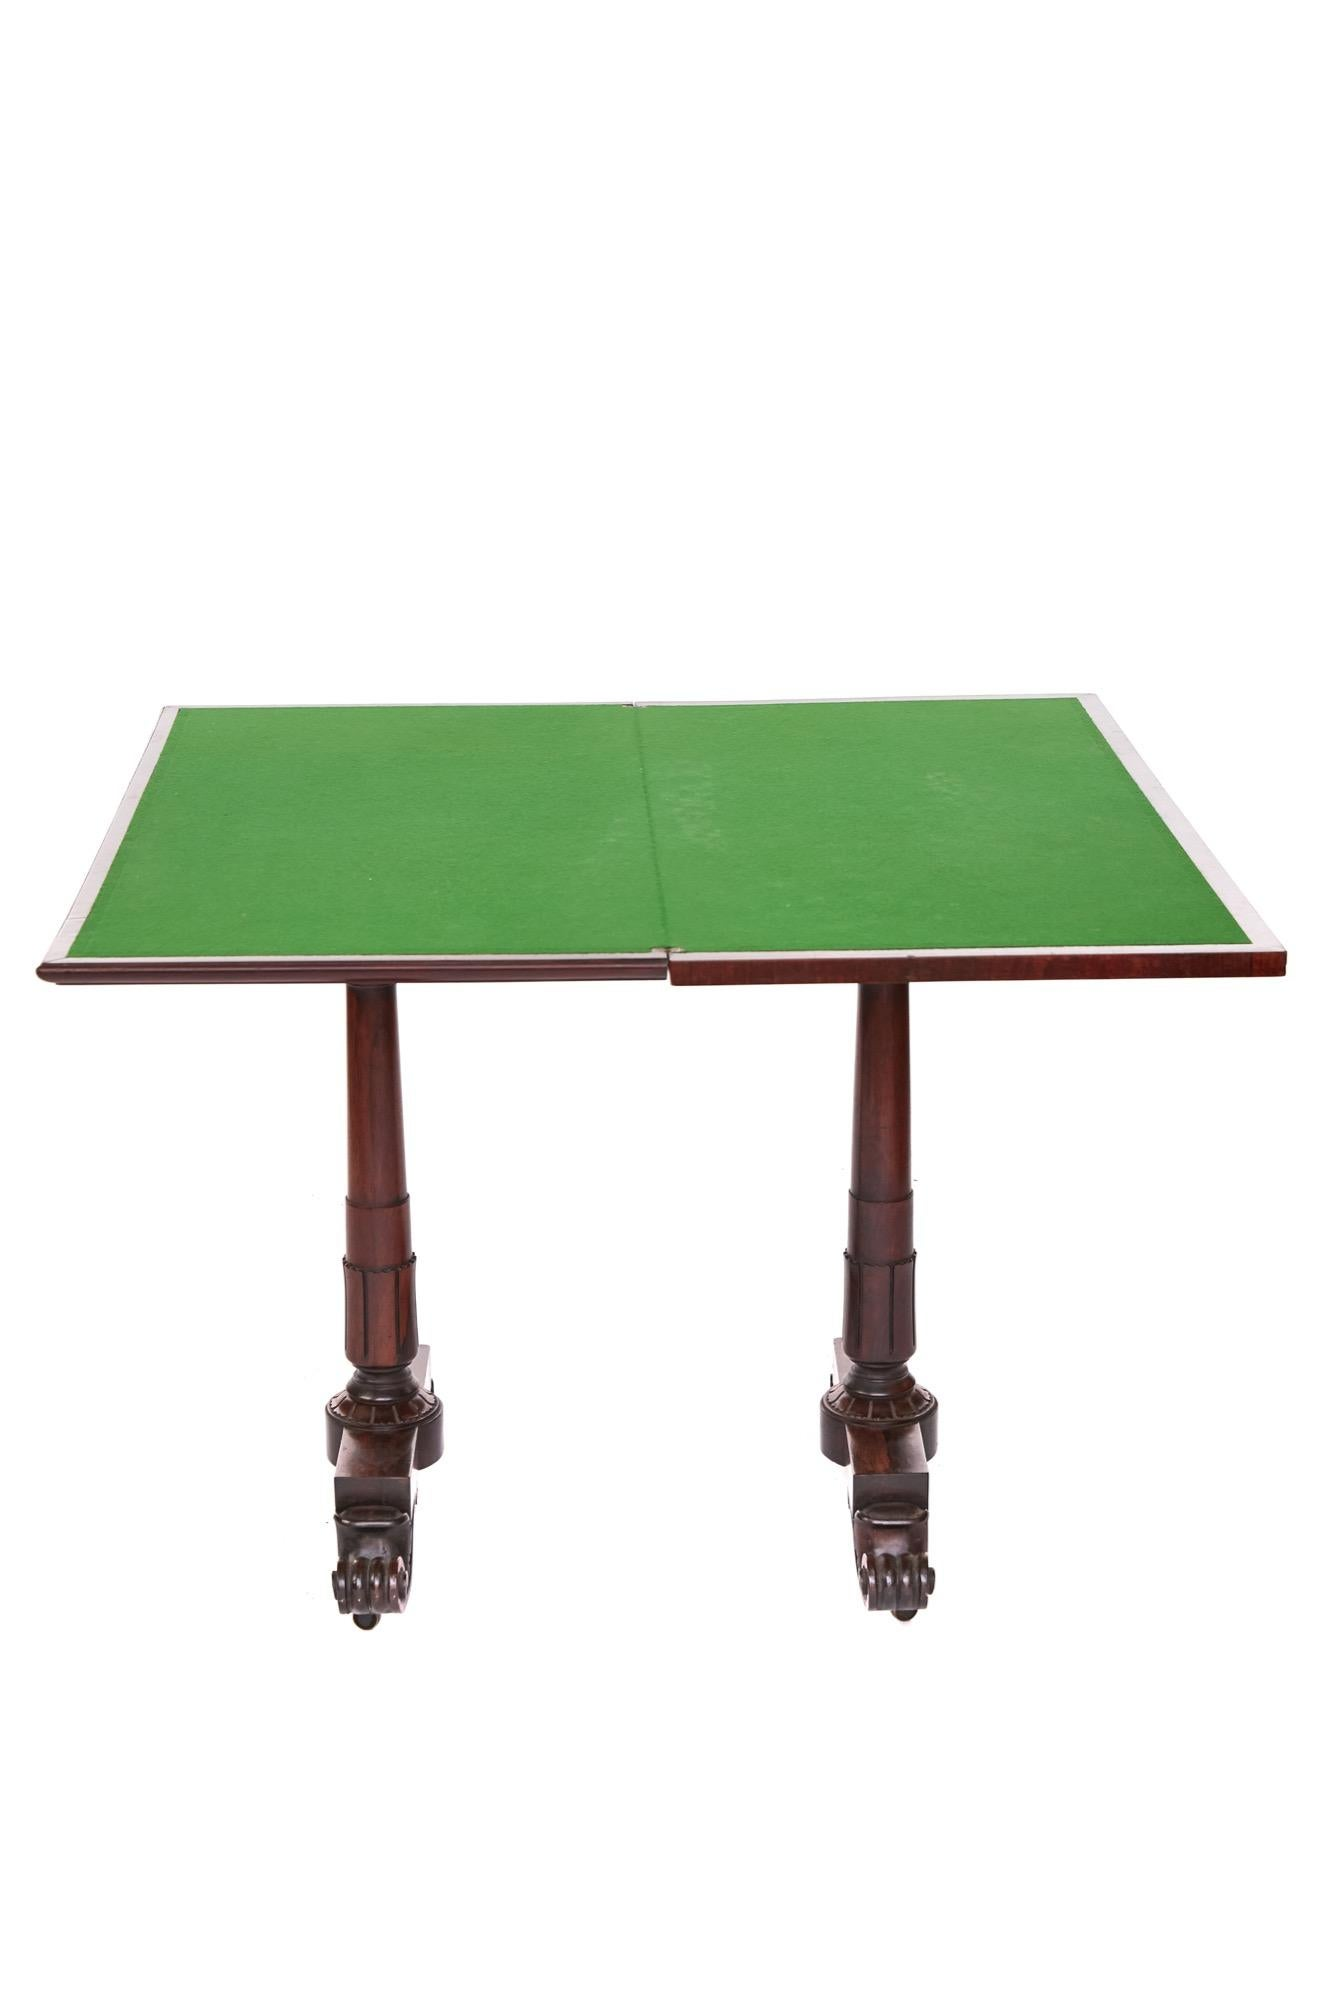 Folding Card Table Canada Antique And Vintage Card Tables And Tea Tables 985 For Sale At